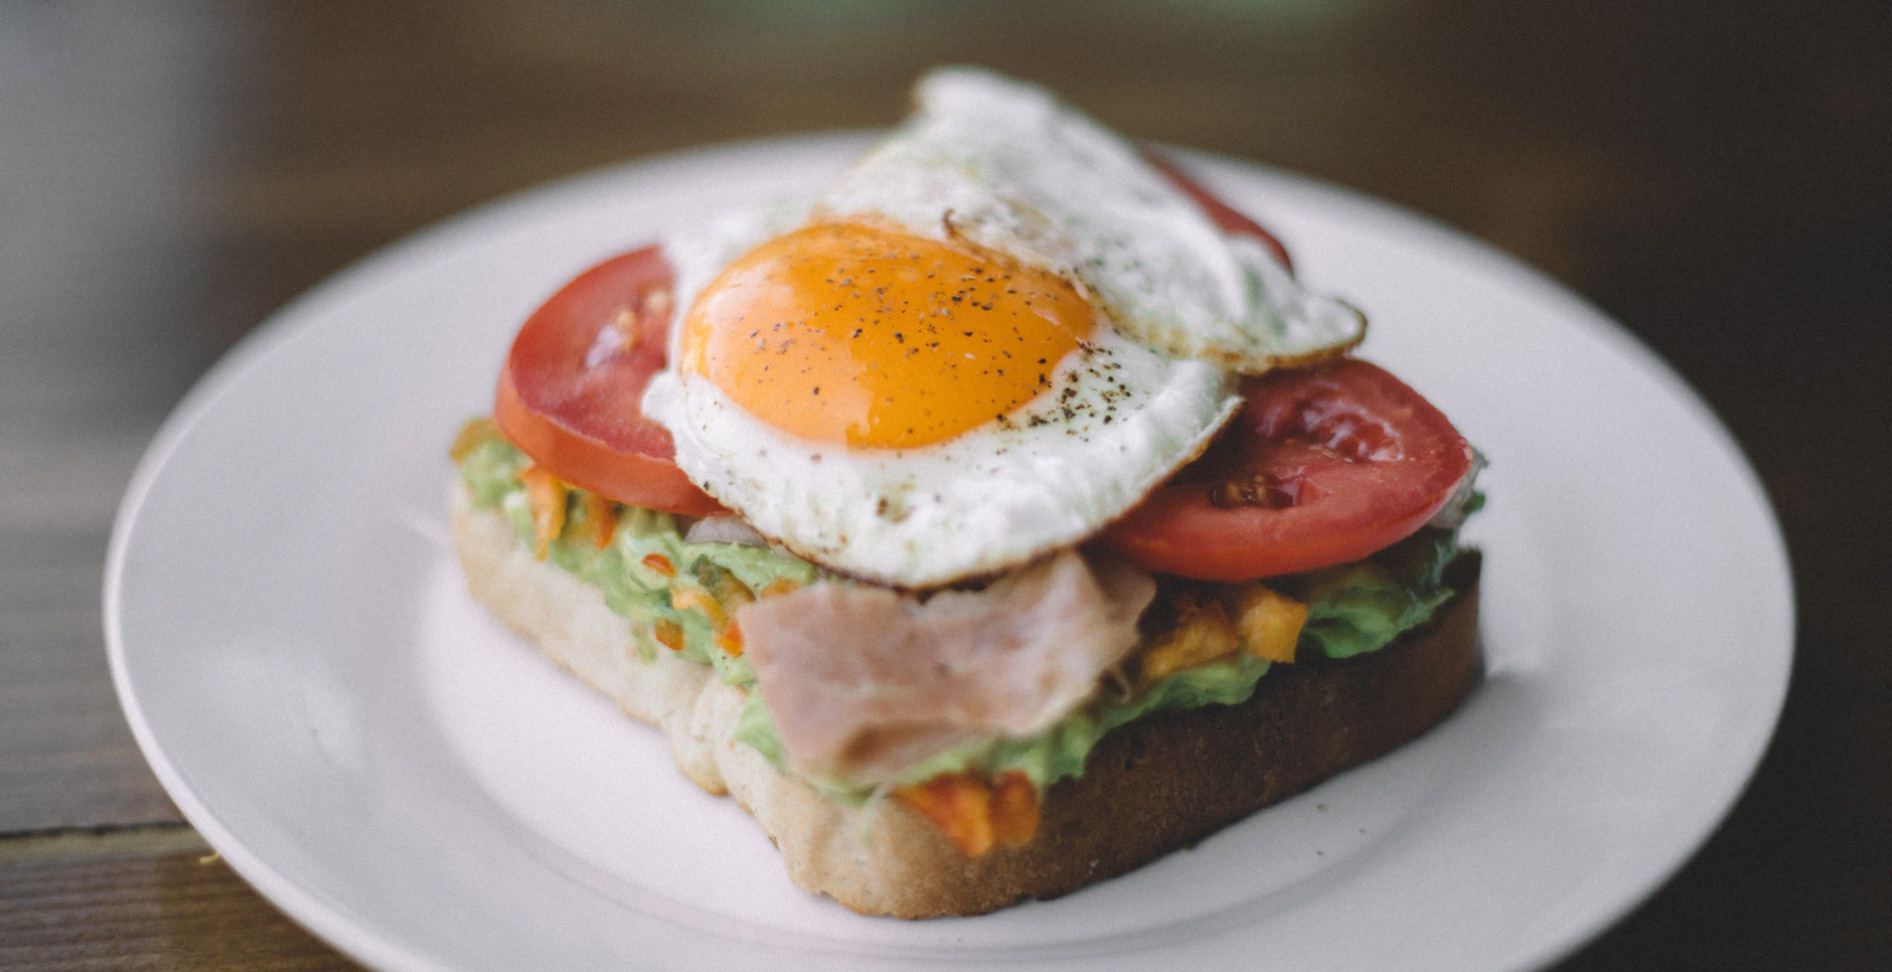 Avocado toast with eggs and tomatoes on a plate